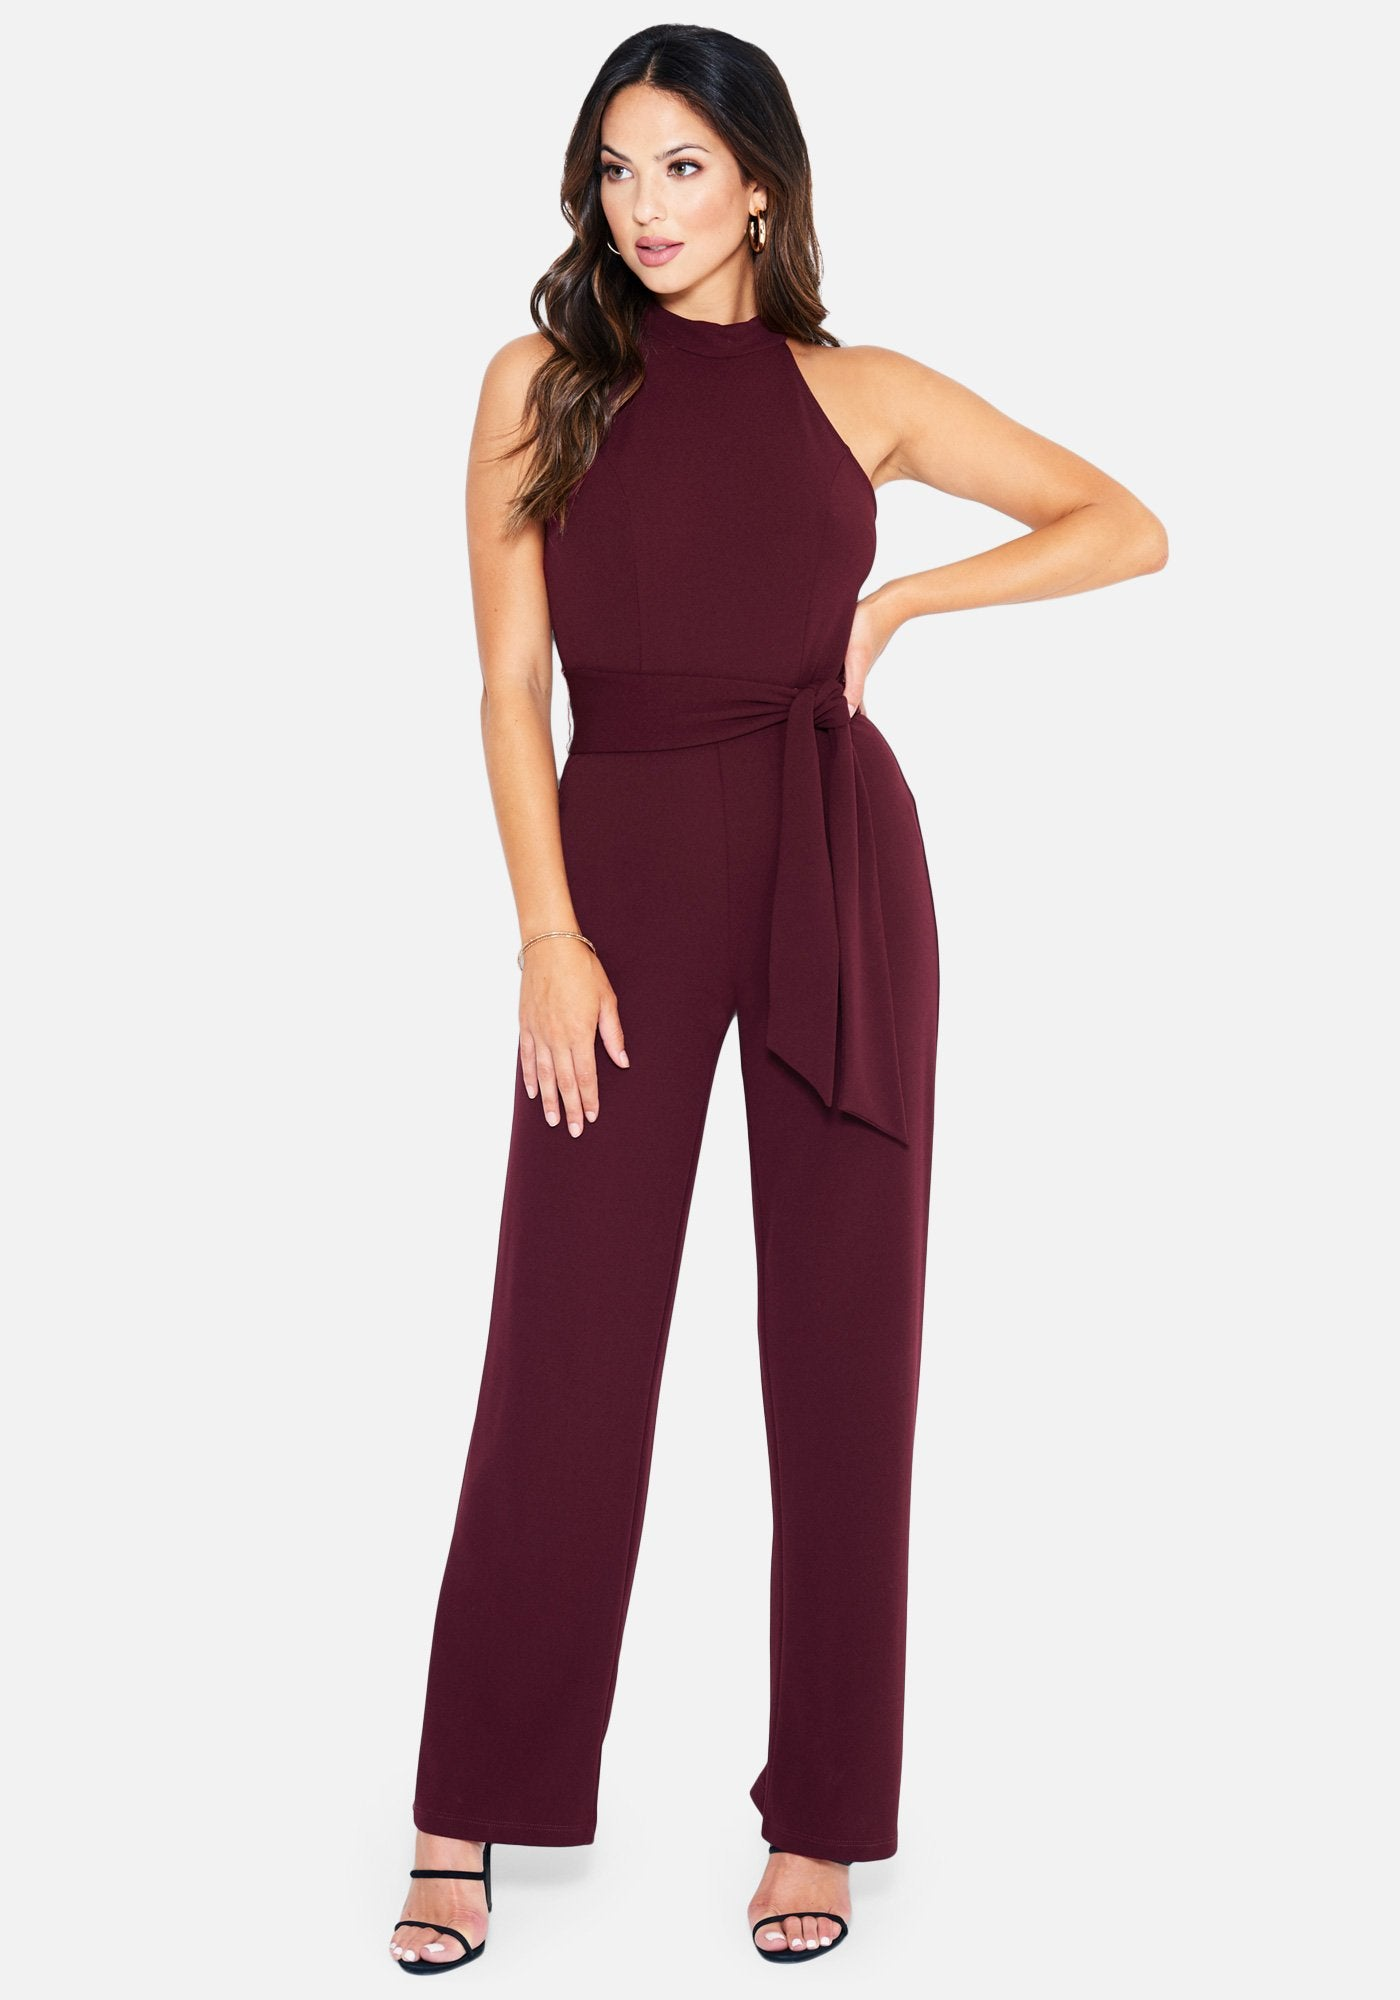 Bebe Women's Halter Neck Belted Jumpsuit, Size 2 in Wine Polyester